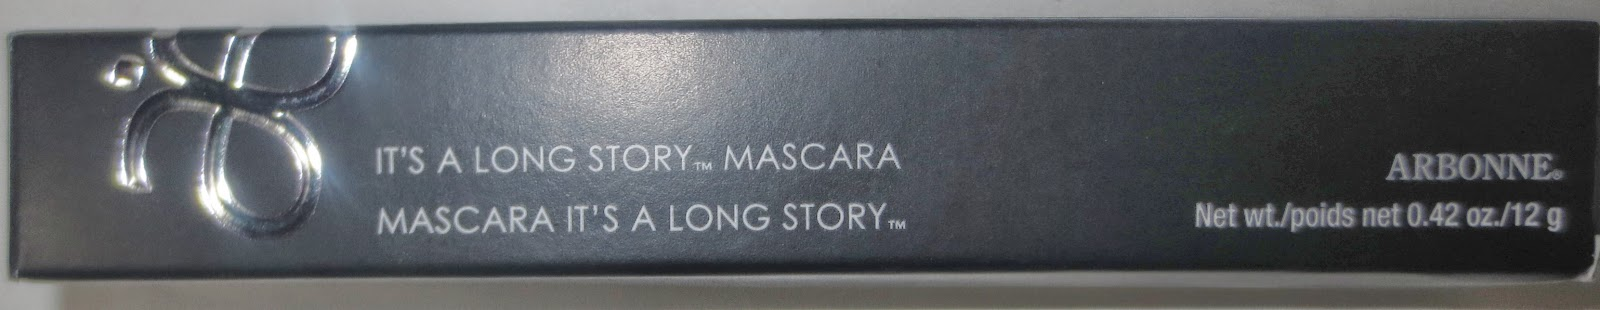 Arbonne It's a Long Story Mascara Packaging